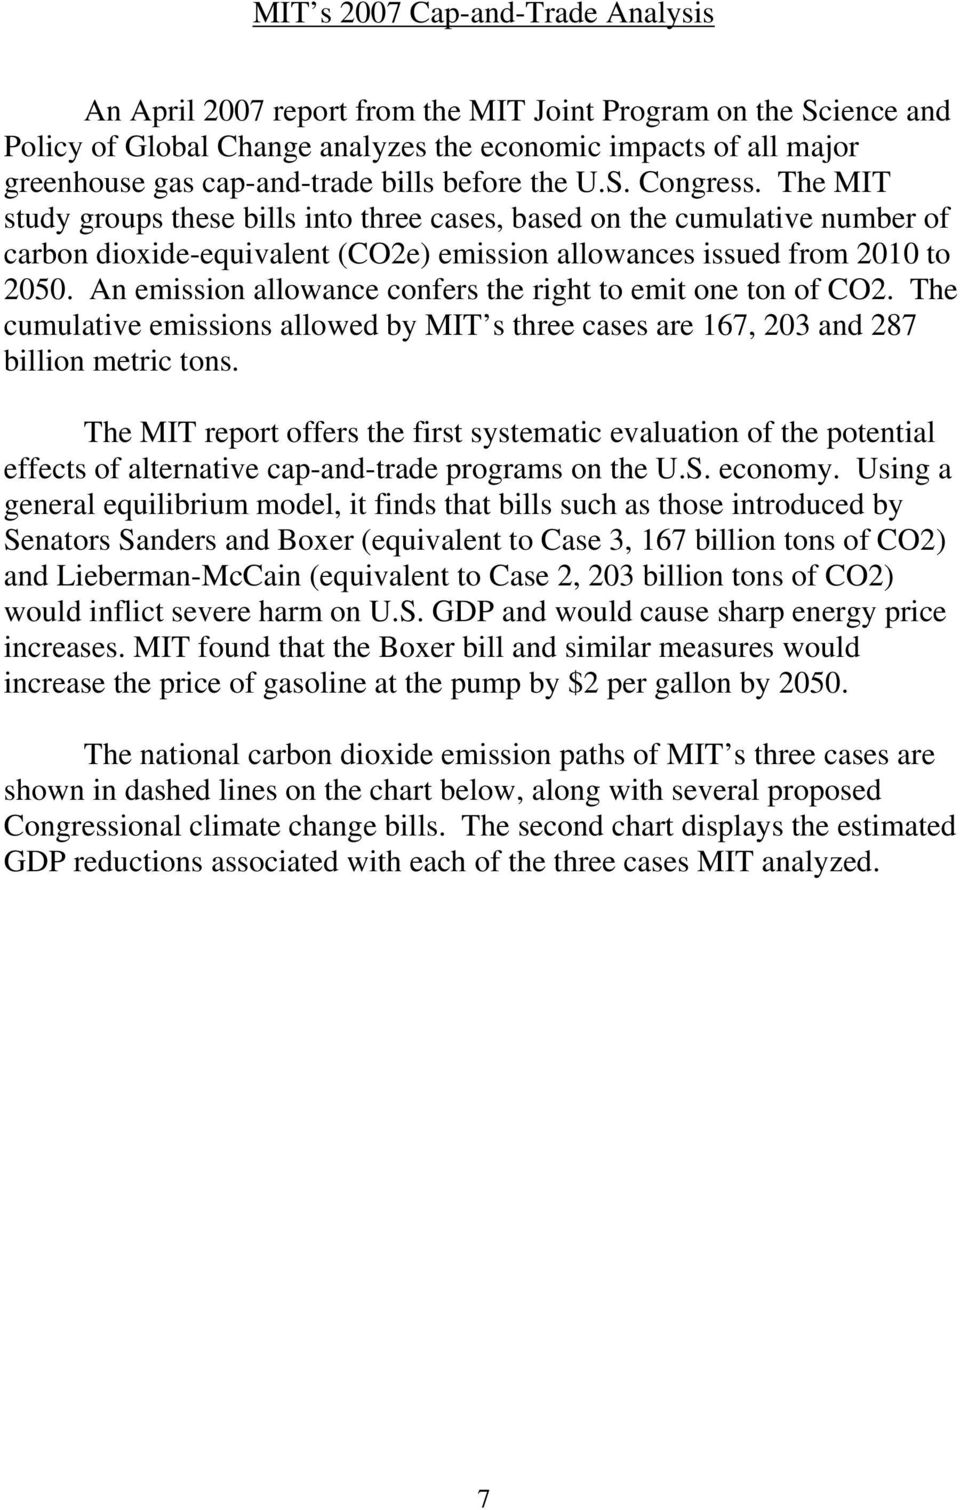 An emission allowance confers the right to emit one ton of CO2. The cumulative emissions allowed by MIT s three cases are 167, 203 and 287 billion metric tons.